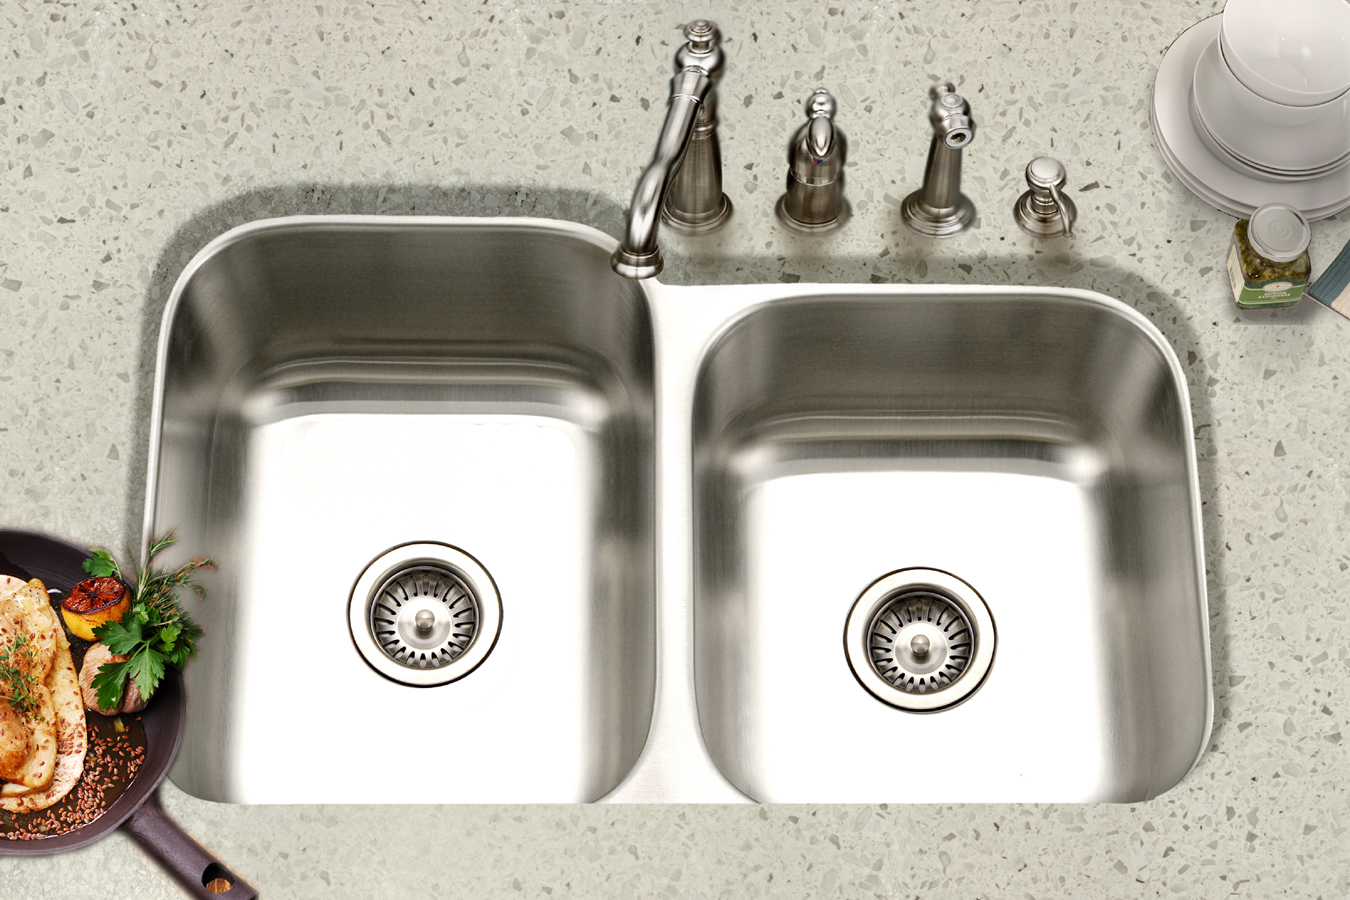 Stainless Steel Sinks for Home